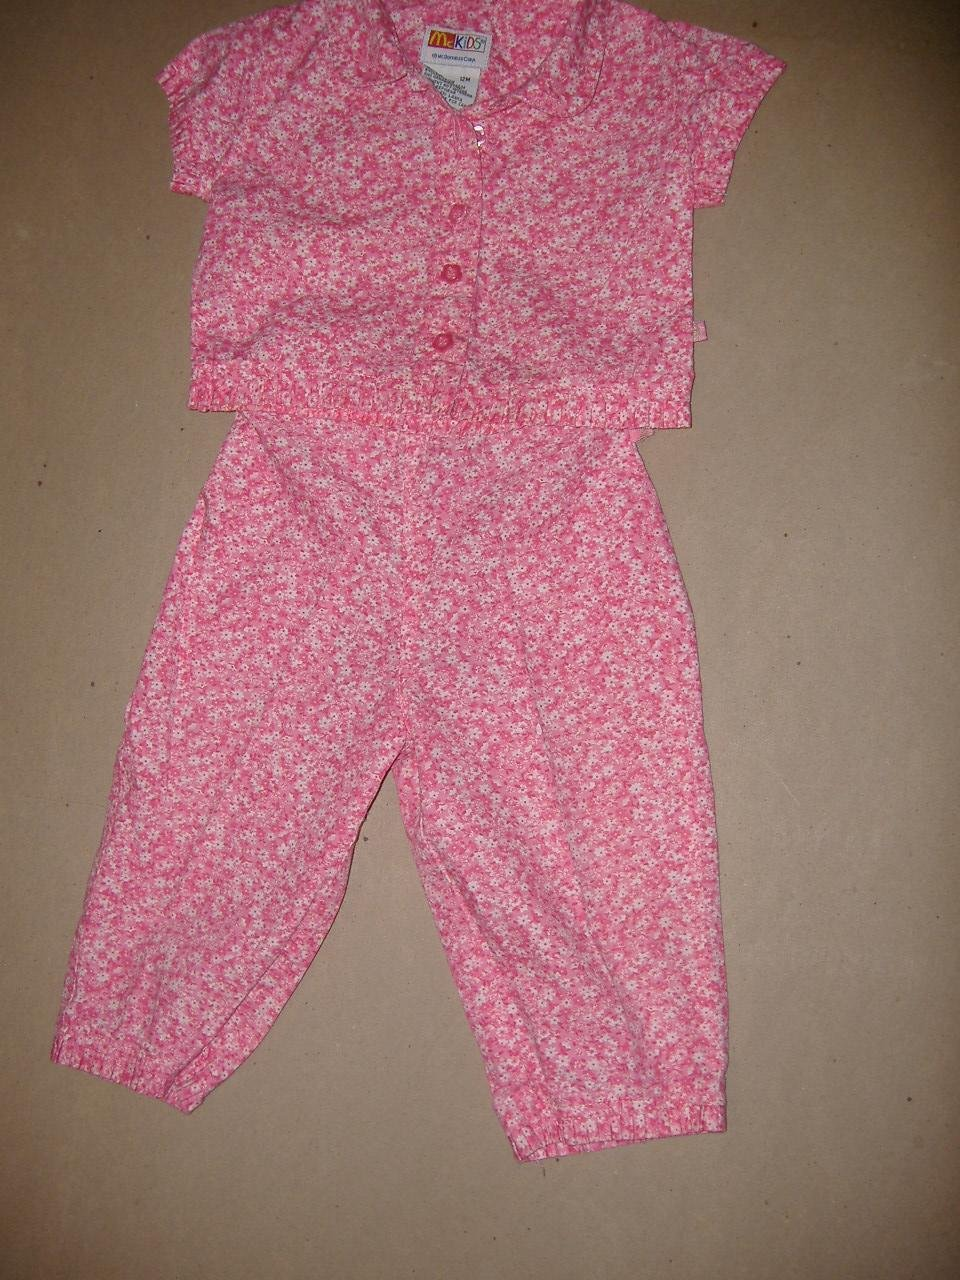 McKids Girl's 2 Piece Set  Size 12 Months